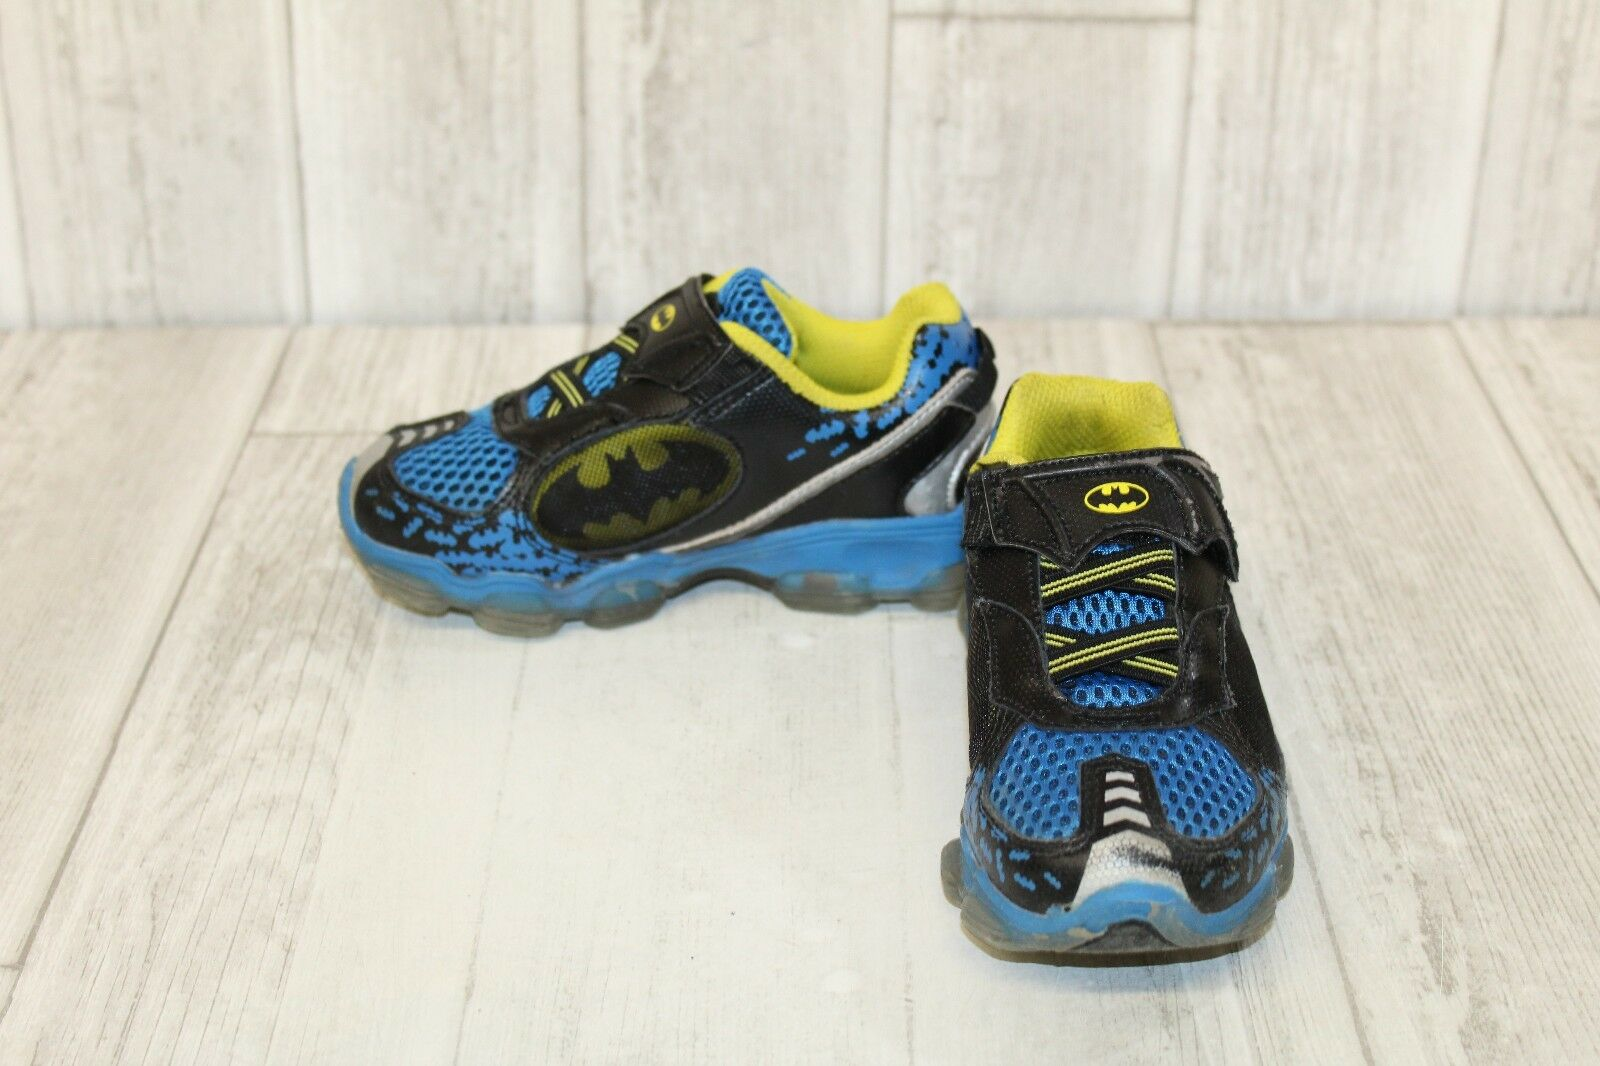 63ee319fa55941 Stride Rite Batman Lighted Sneaker Running Shoe Navy yellow 10.5 M ...